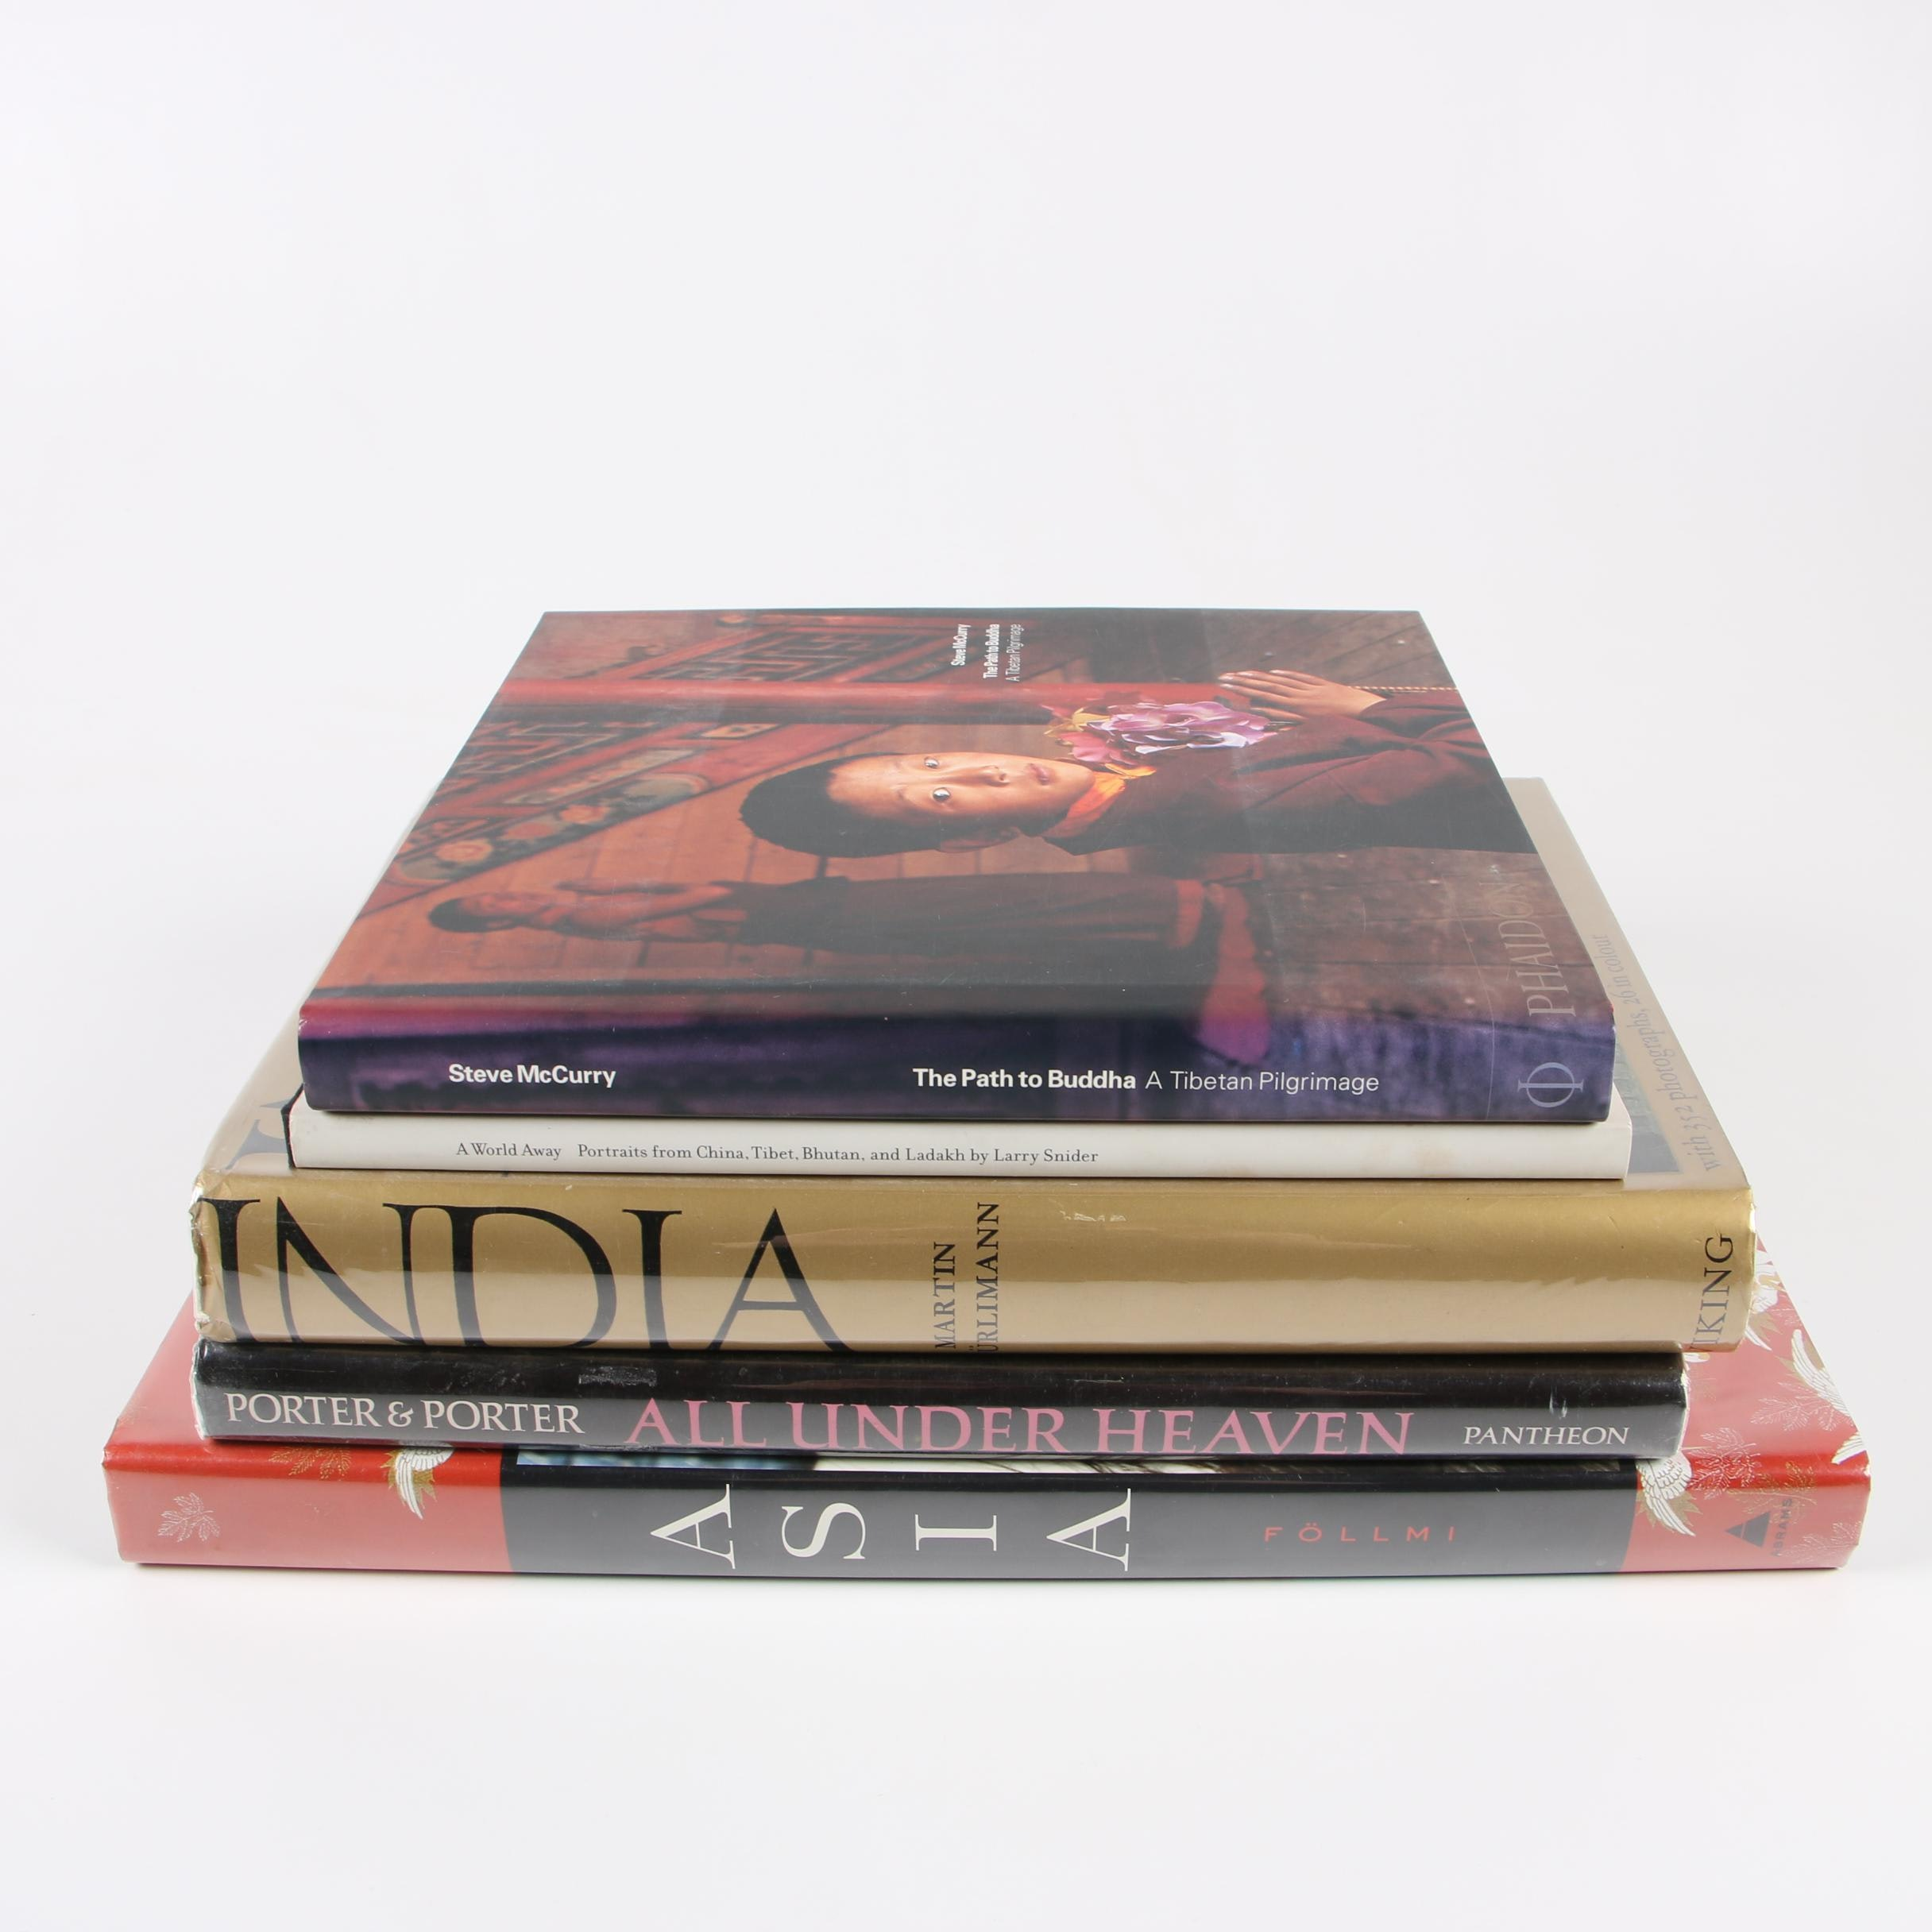 Asian Art, Architecture and Photography Coffee Table Books